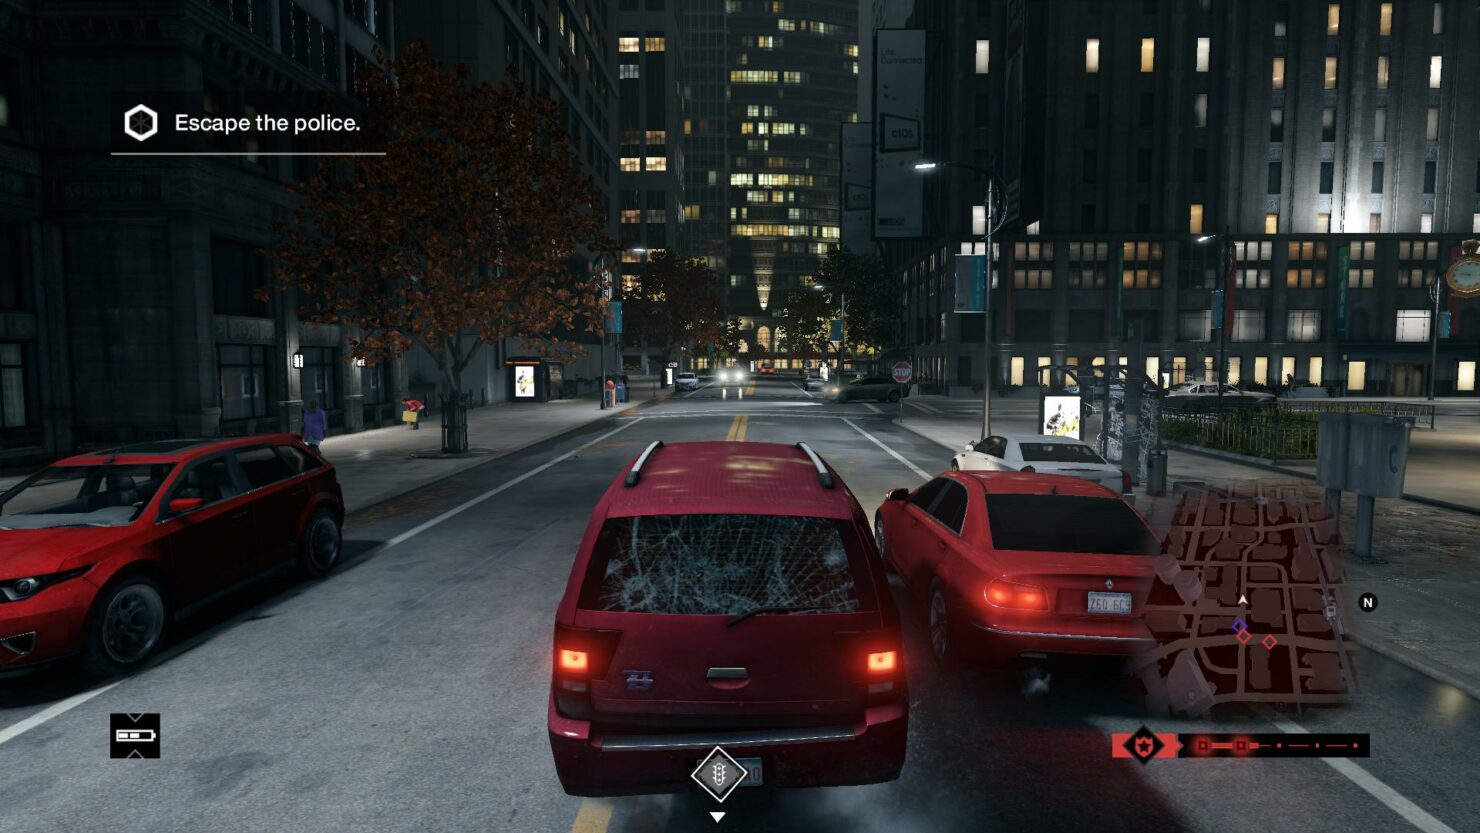 watch_dogs-2014-05-24-11-36-05-38